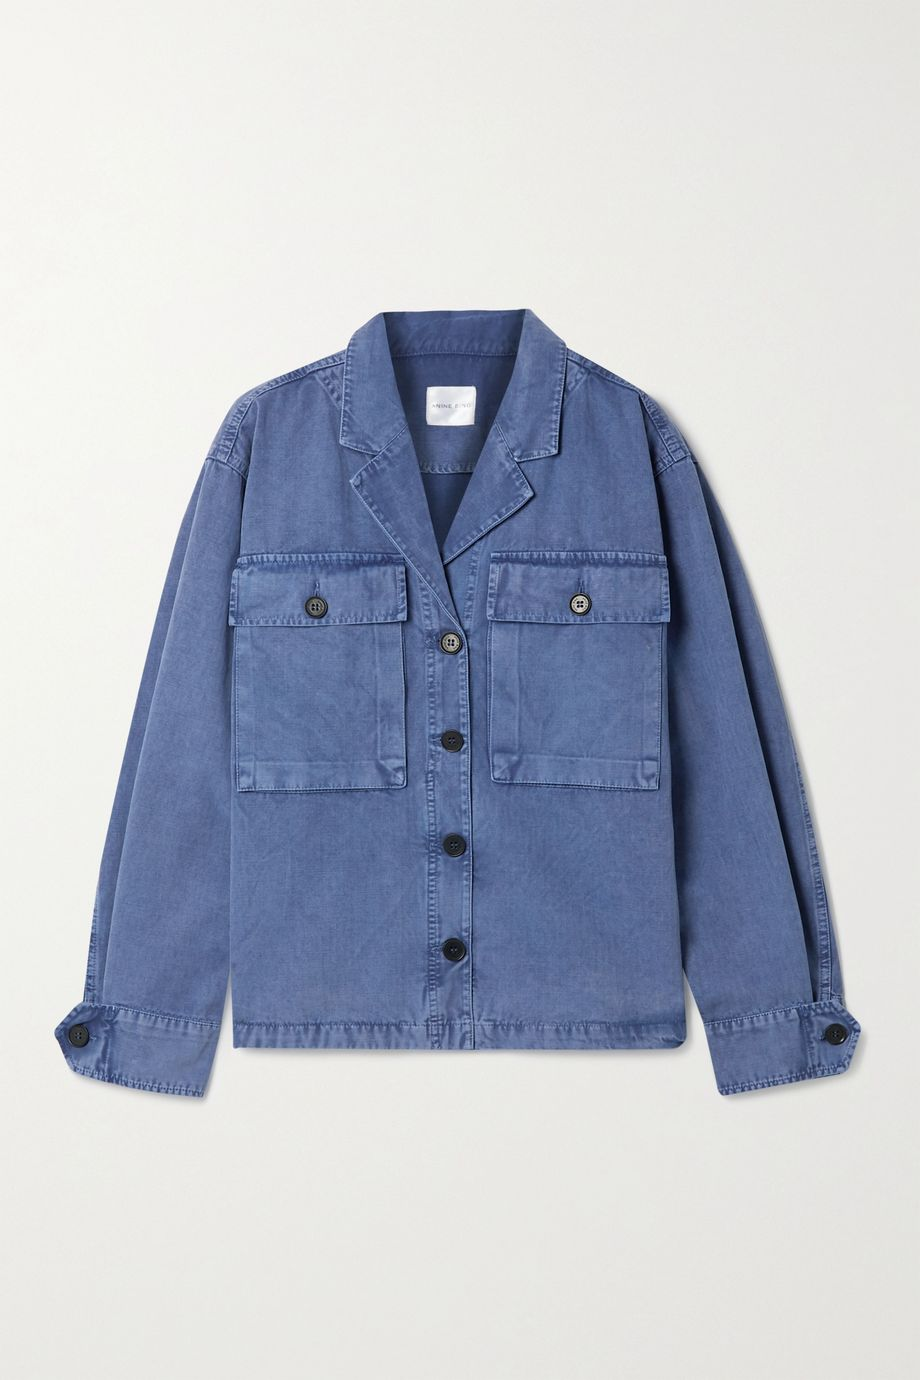 Anine Bing Sawyer herringbone cotton jacket